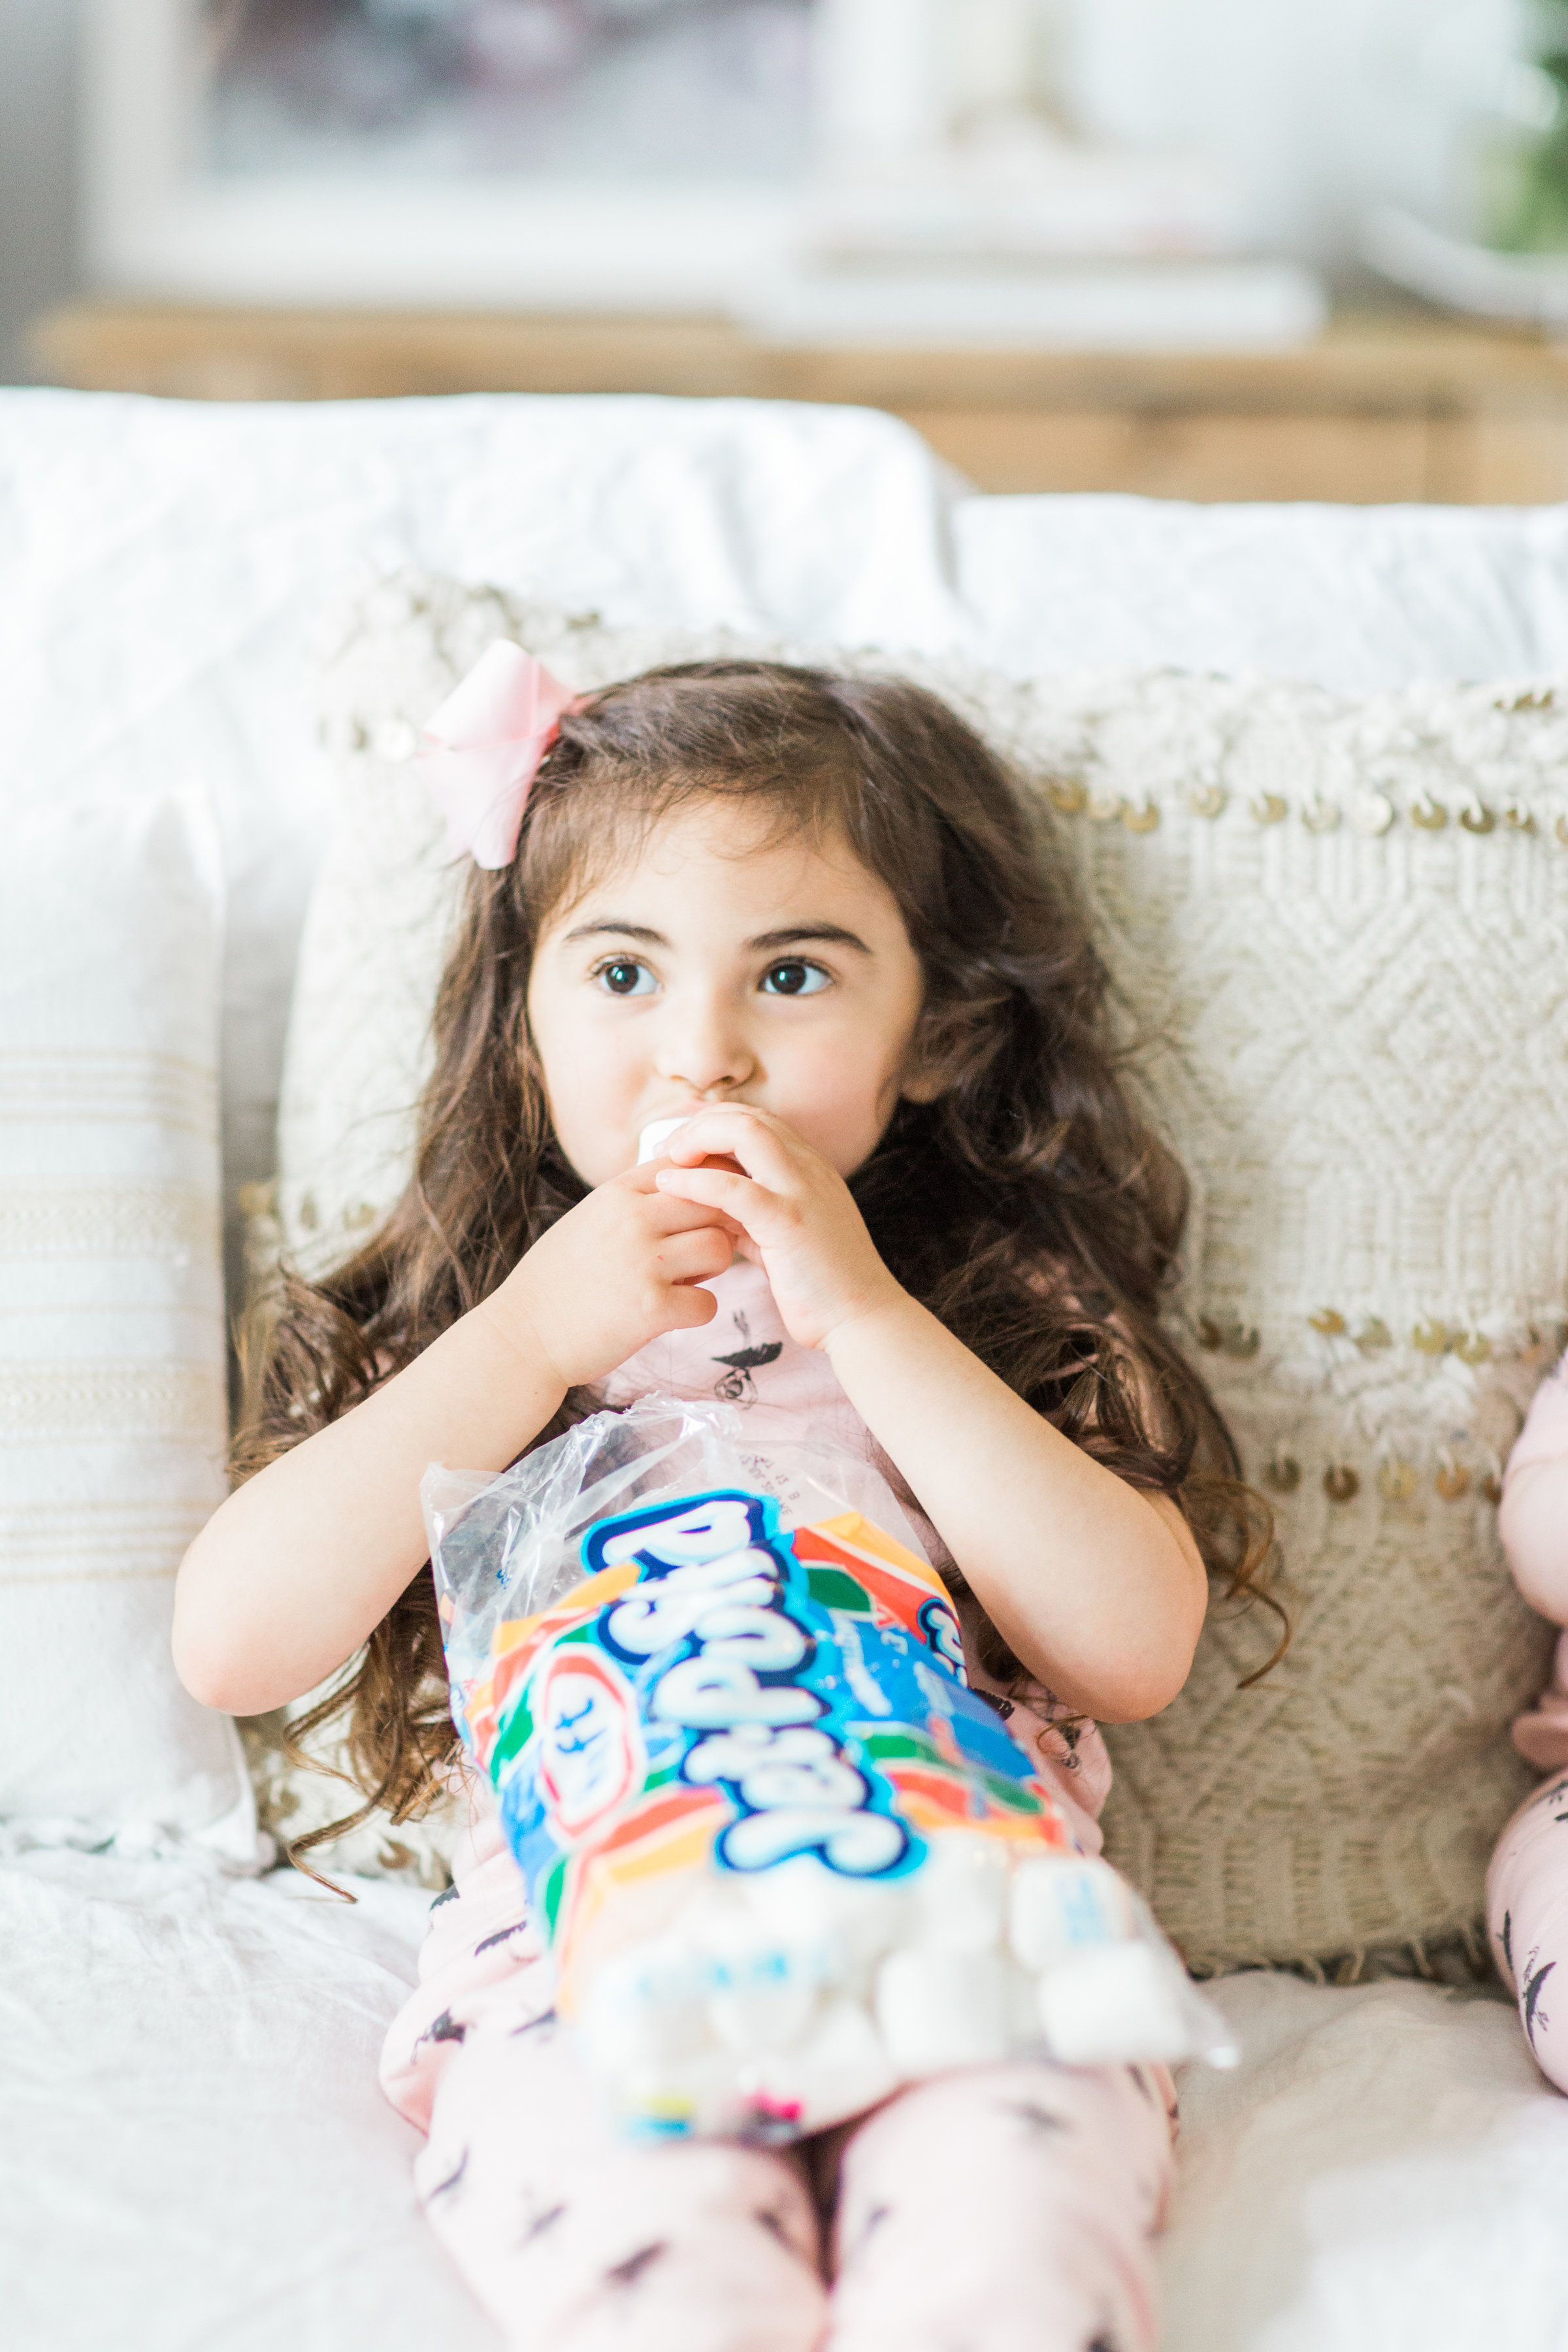 I'm sharing a big 'ol dose of cuteness; a.k.a., the behind-the-scenes of the girls trying s'mores for the first time (and caught on camera) from our family movie night! #smores #matchingpajamas #movienight #familyfun #smoresparty   glitterinc.com   @glitterinc